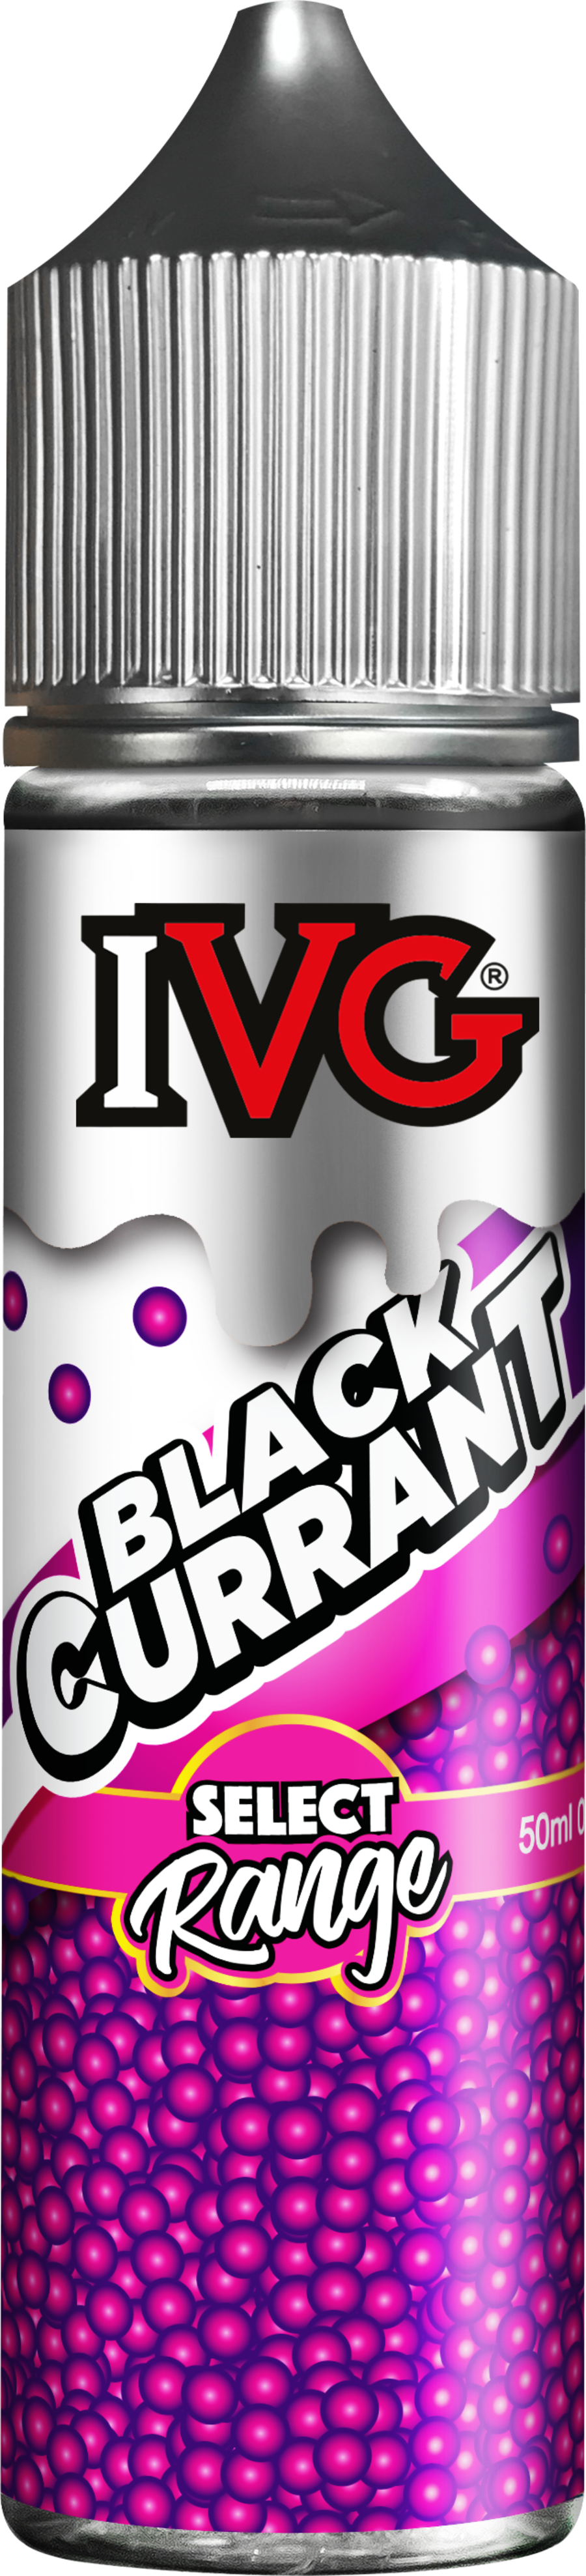 Blackcurrant By I VG Sweets 50ml 0mg